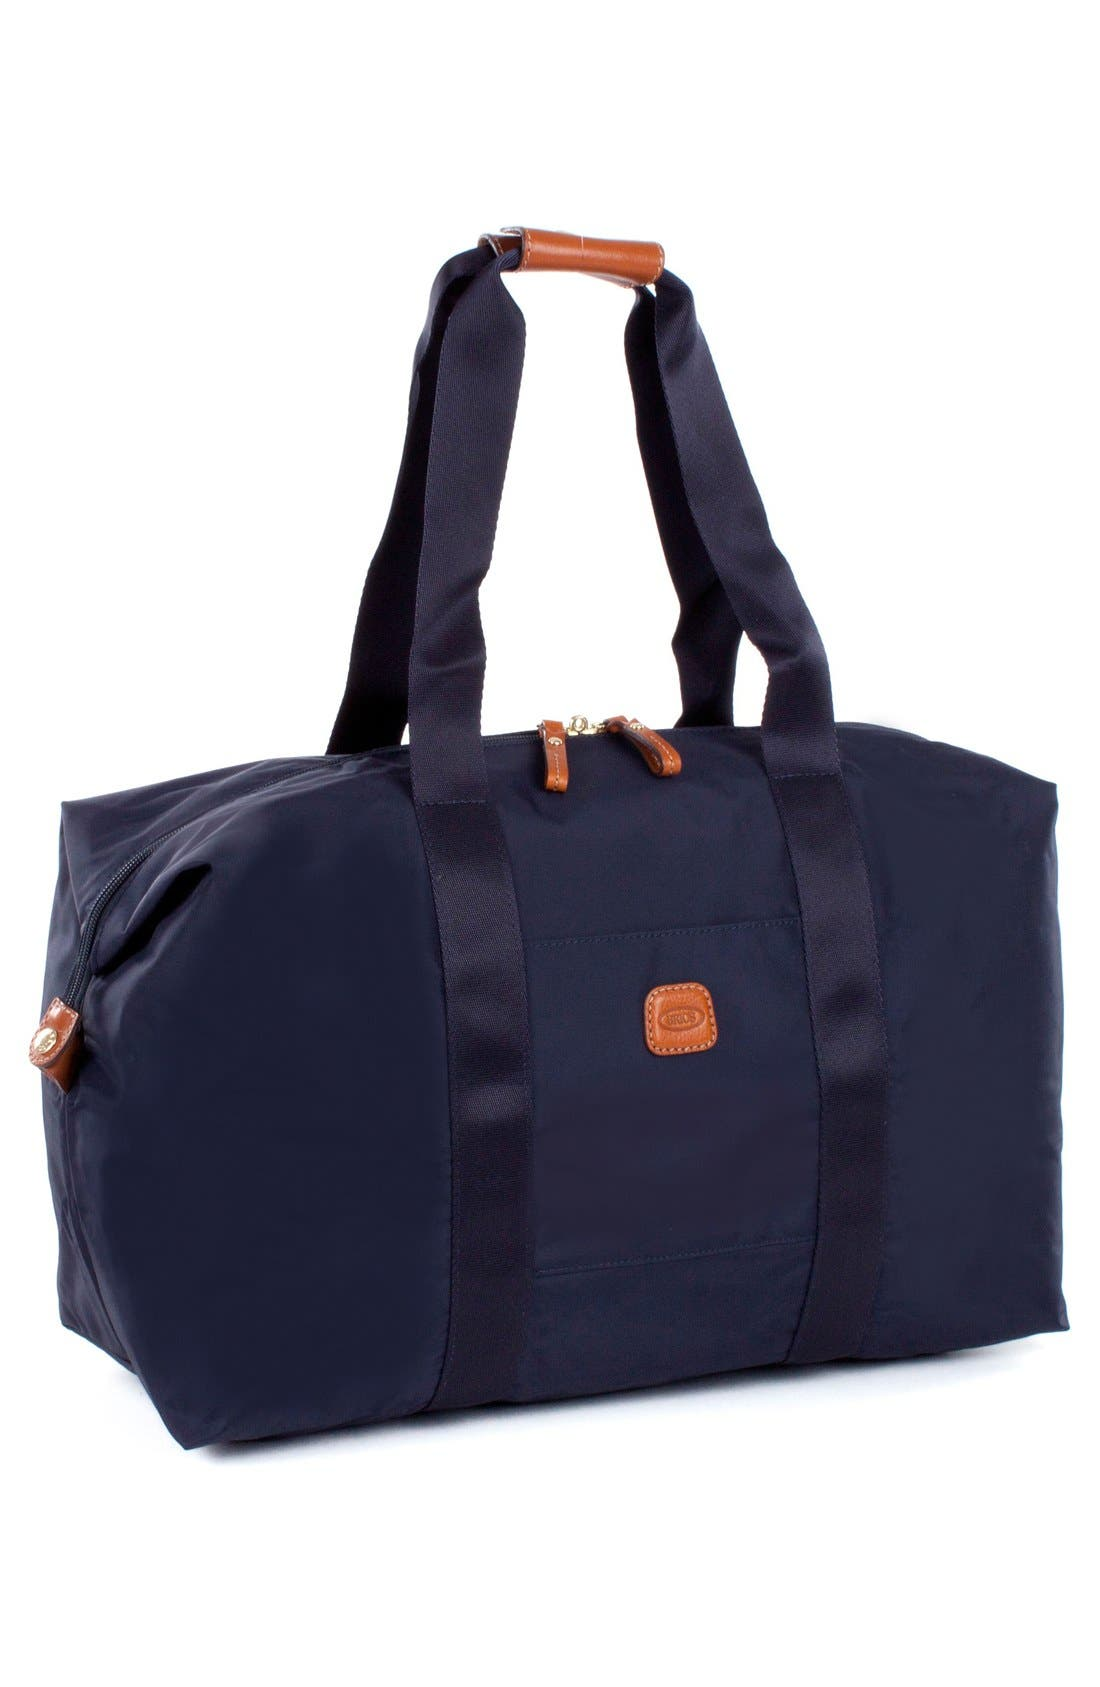 'X-Bag' Folding Duffel Bag,                             Alternate thumbnail 2, color,                             Navy